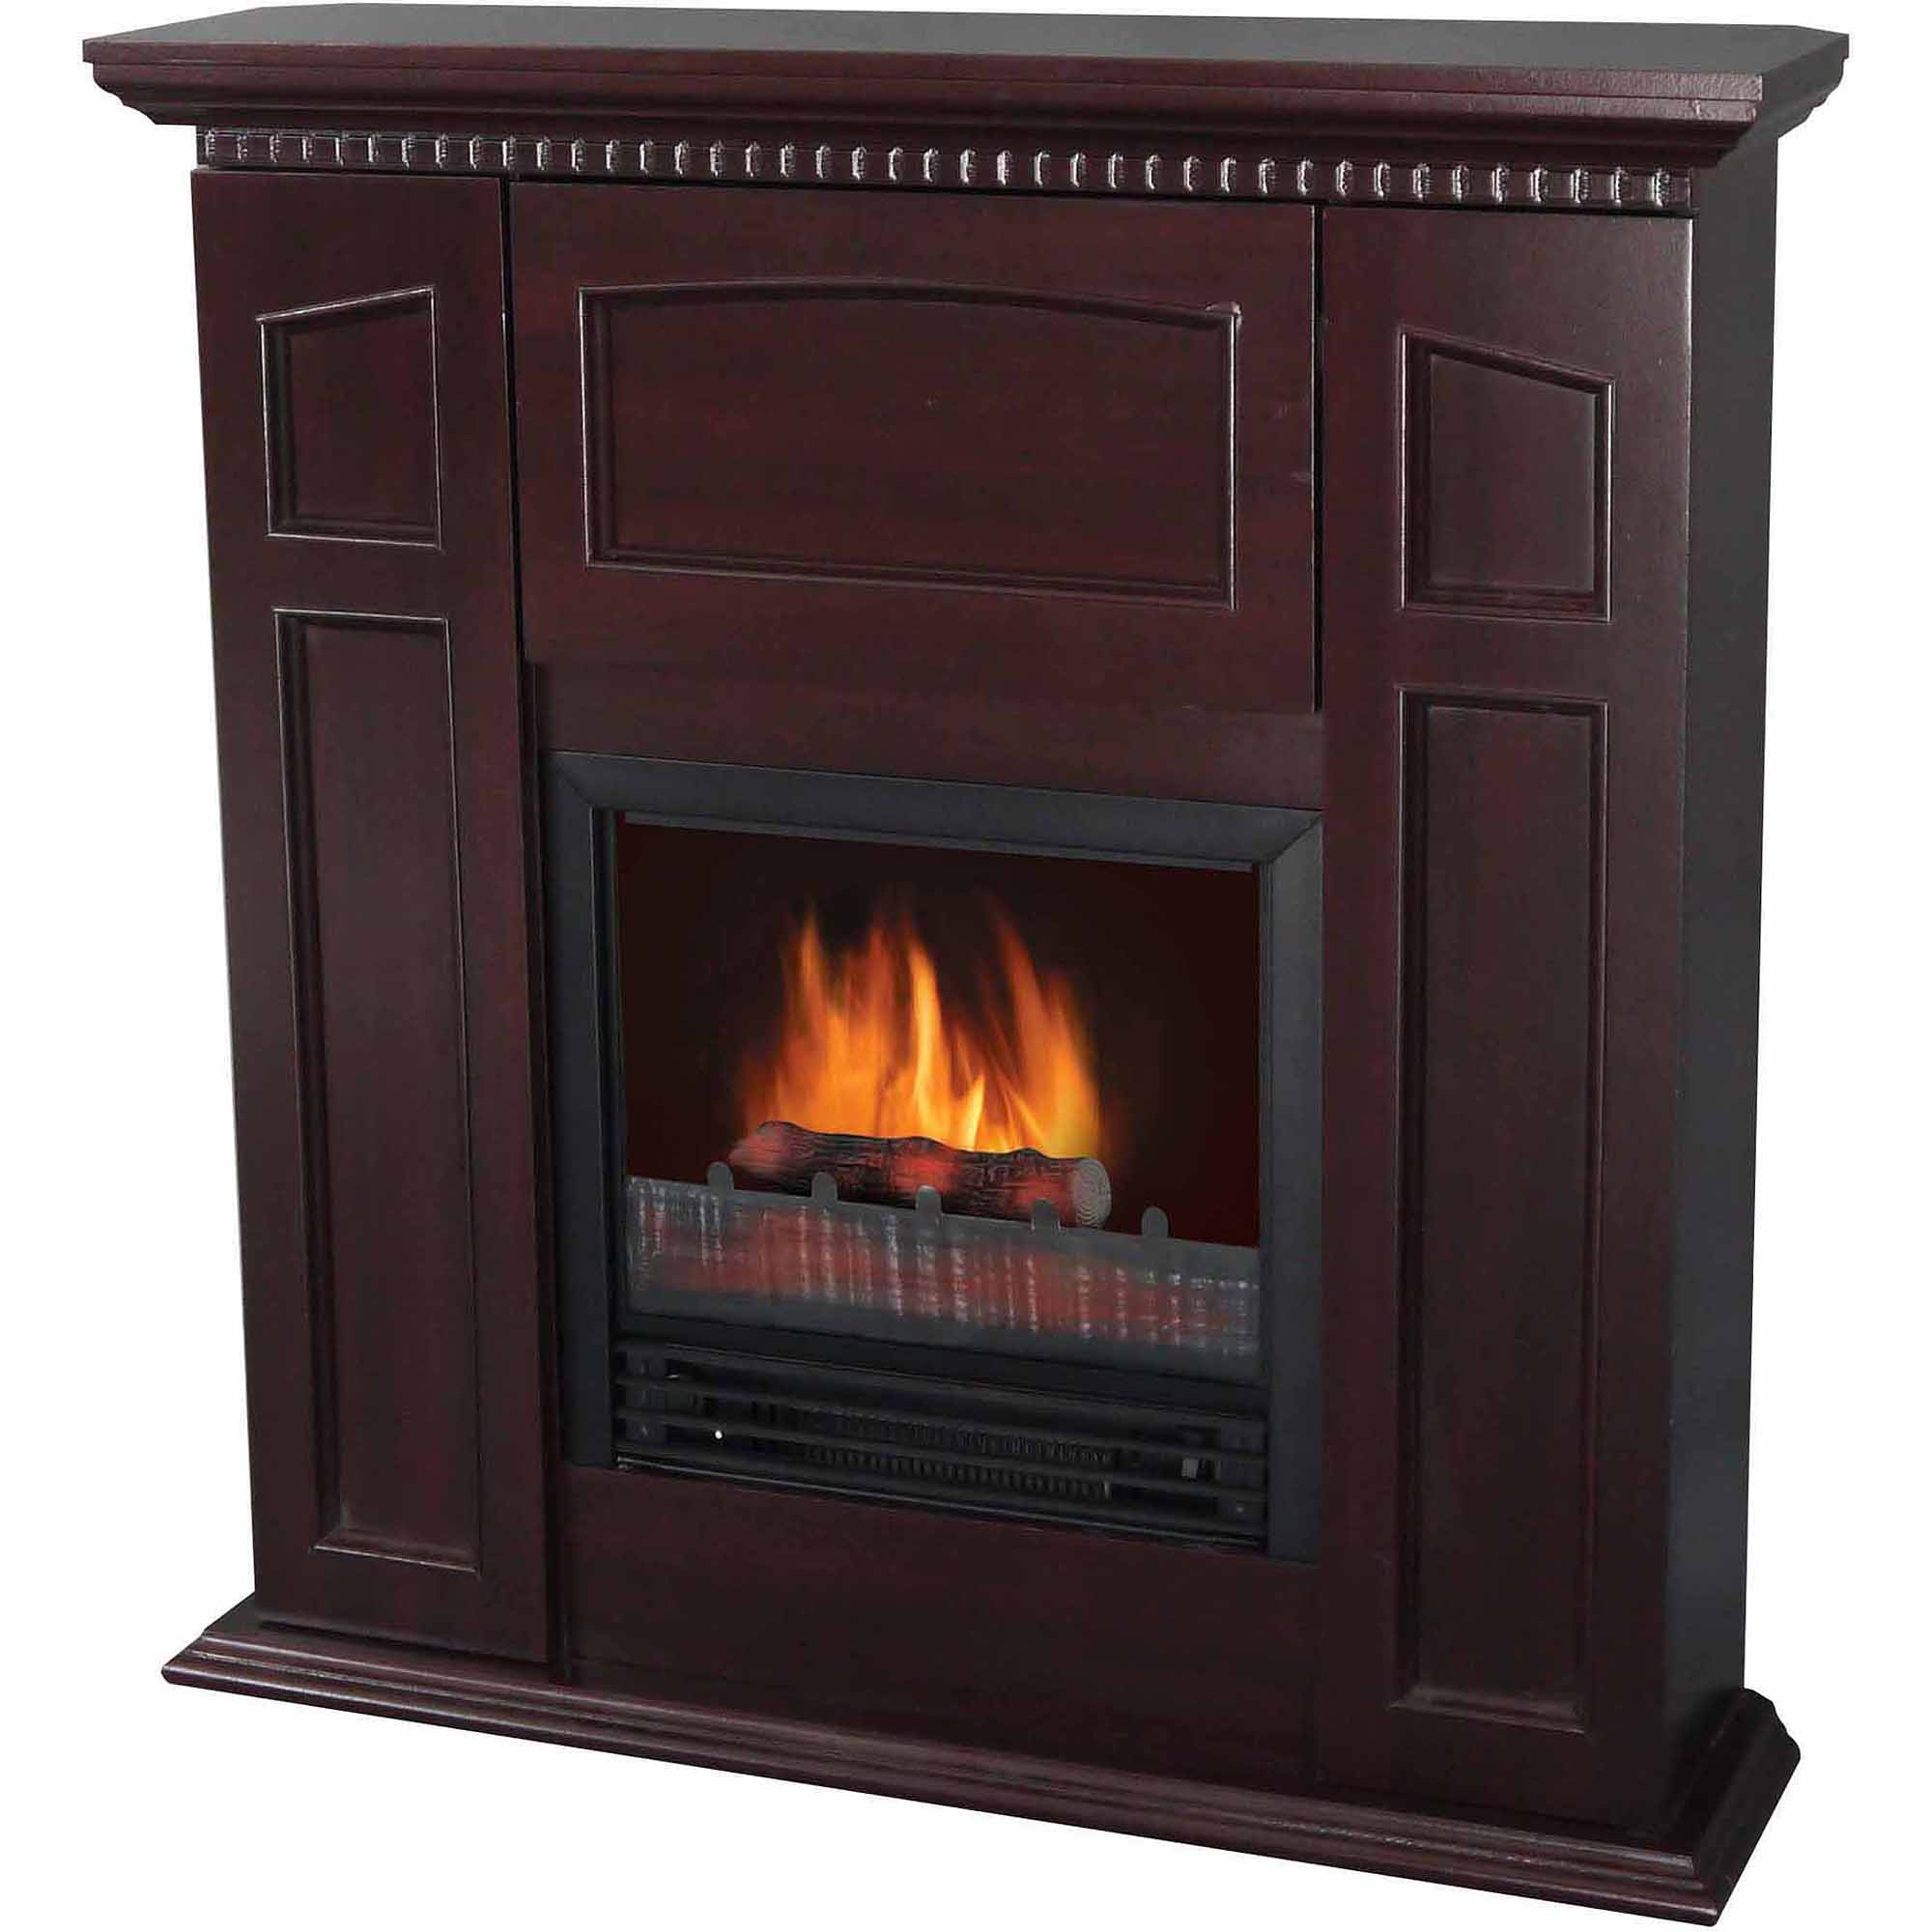 "Electric Fireplace with 36"" Mantle and Storage, Chestnut by Electric Fireplaces"